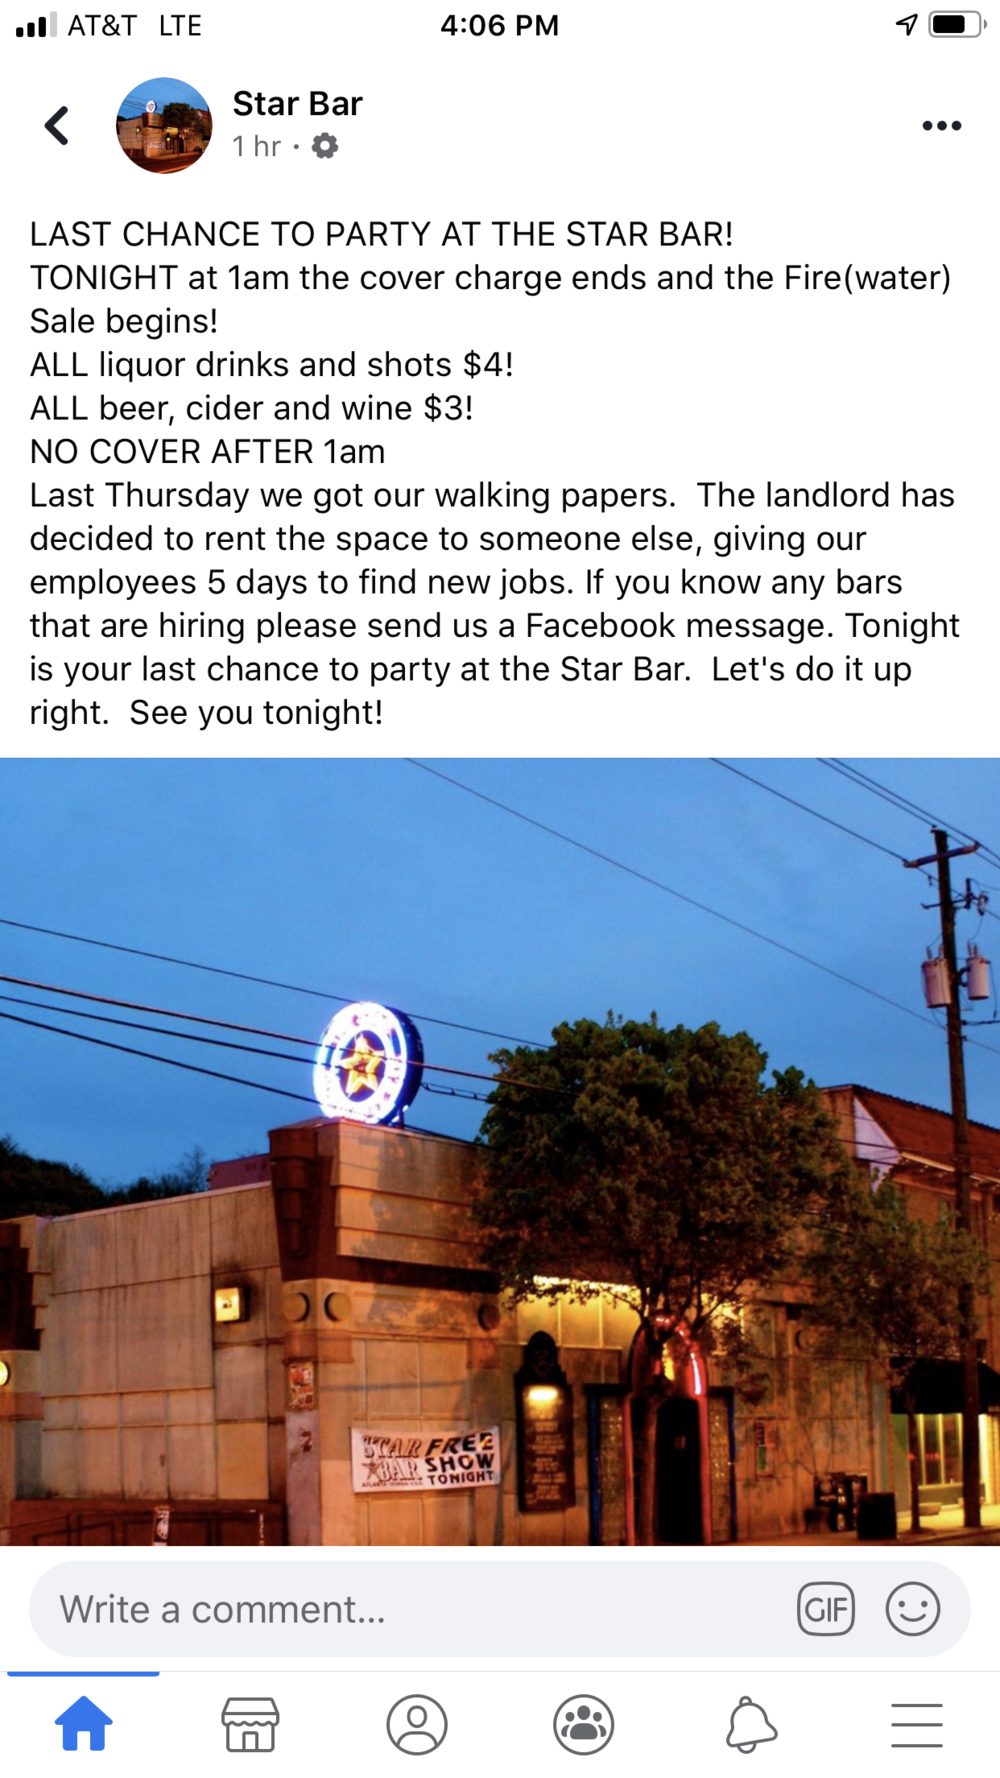 A screenshot of the now-deleted Facebook post announcing Star Bar's closing New Year's Eve. Owner Kahle Davis has not responded to requests for comment.